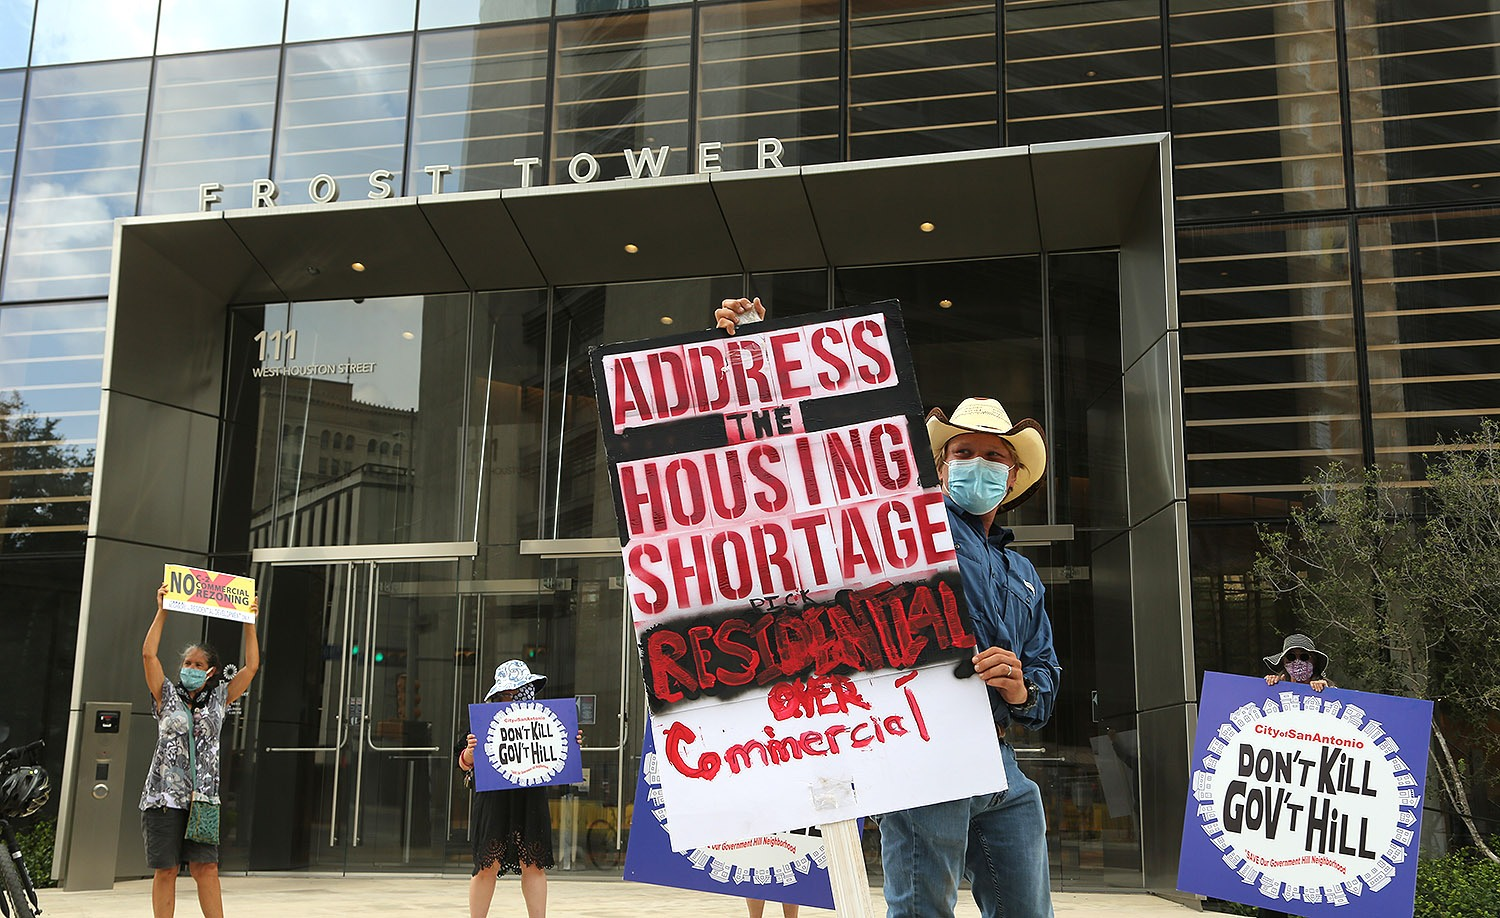 Caleb James, a resident of Government Hill since 2019, leads a protest in front of the Frost Tower on Saturday, July 18, 2020. At one time, a trust managed by Frost Bank and other entities were exploring converting residential homes in the neighborhood into a Starbucks. <b><em>Photo by Ben Olivo | Heron</em></b>